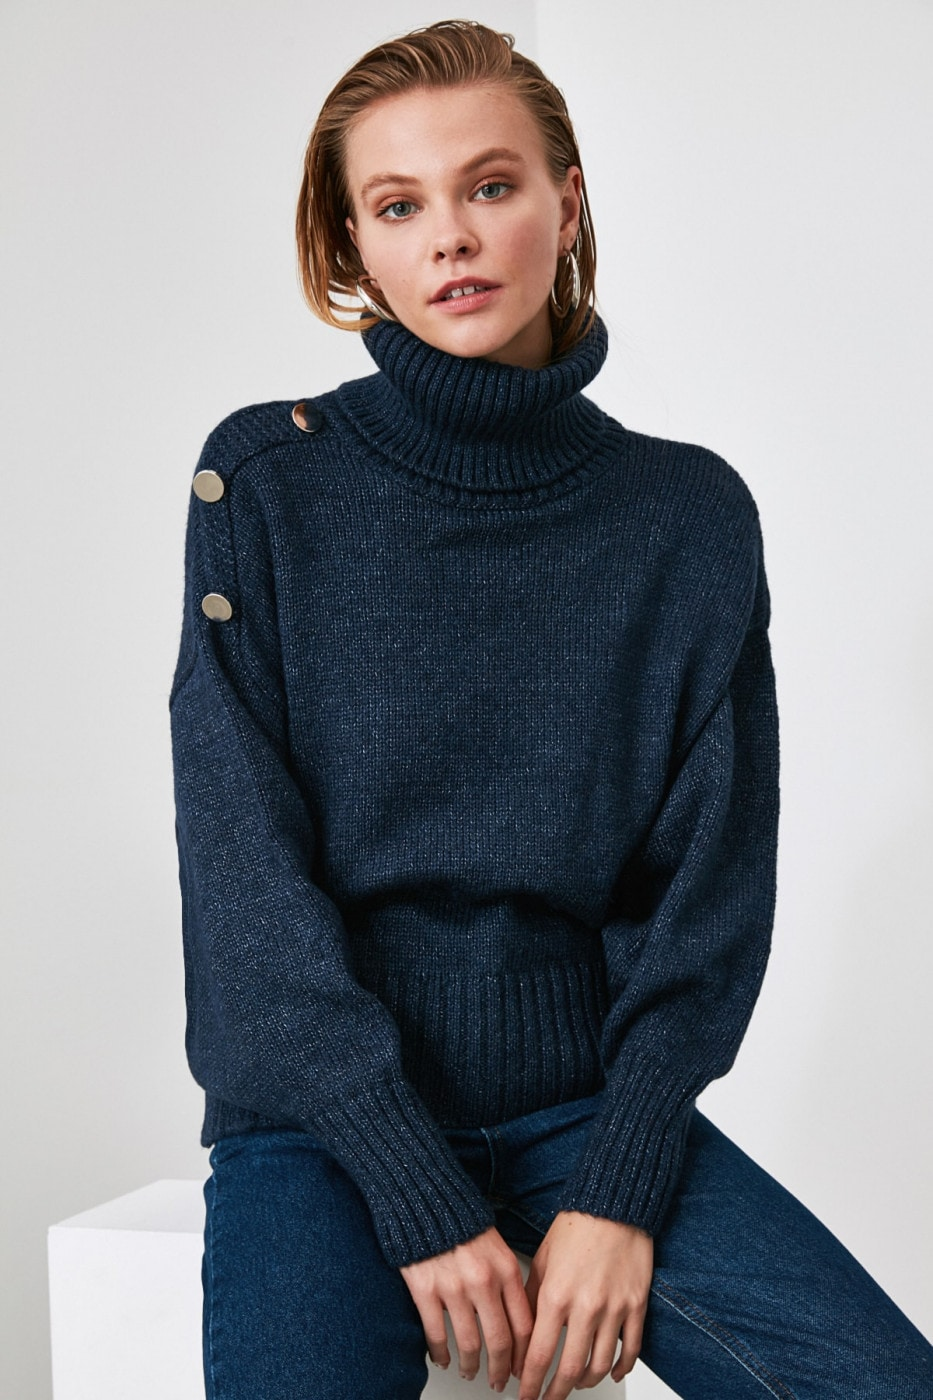 Trendyol Indigo Turtleneck Button Detailed Knitwear Sweater